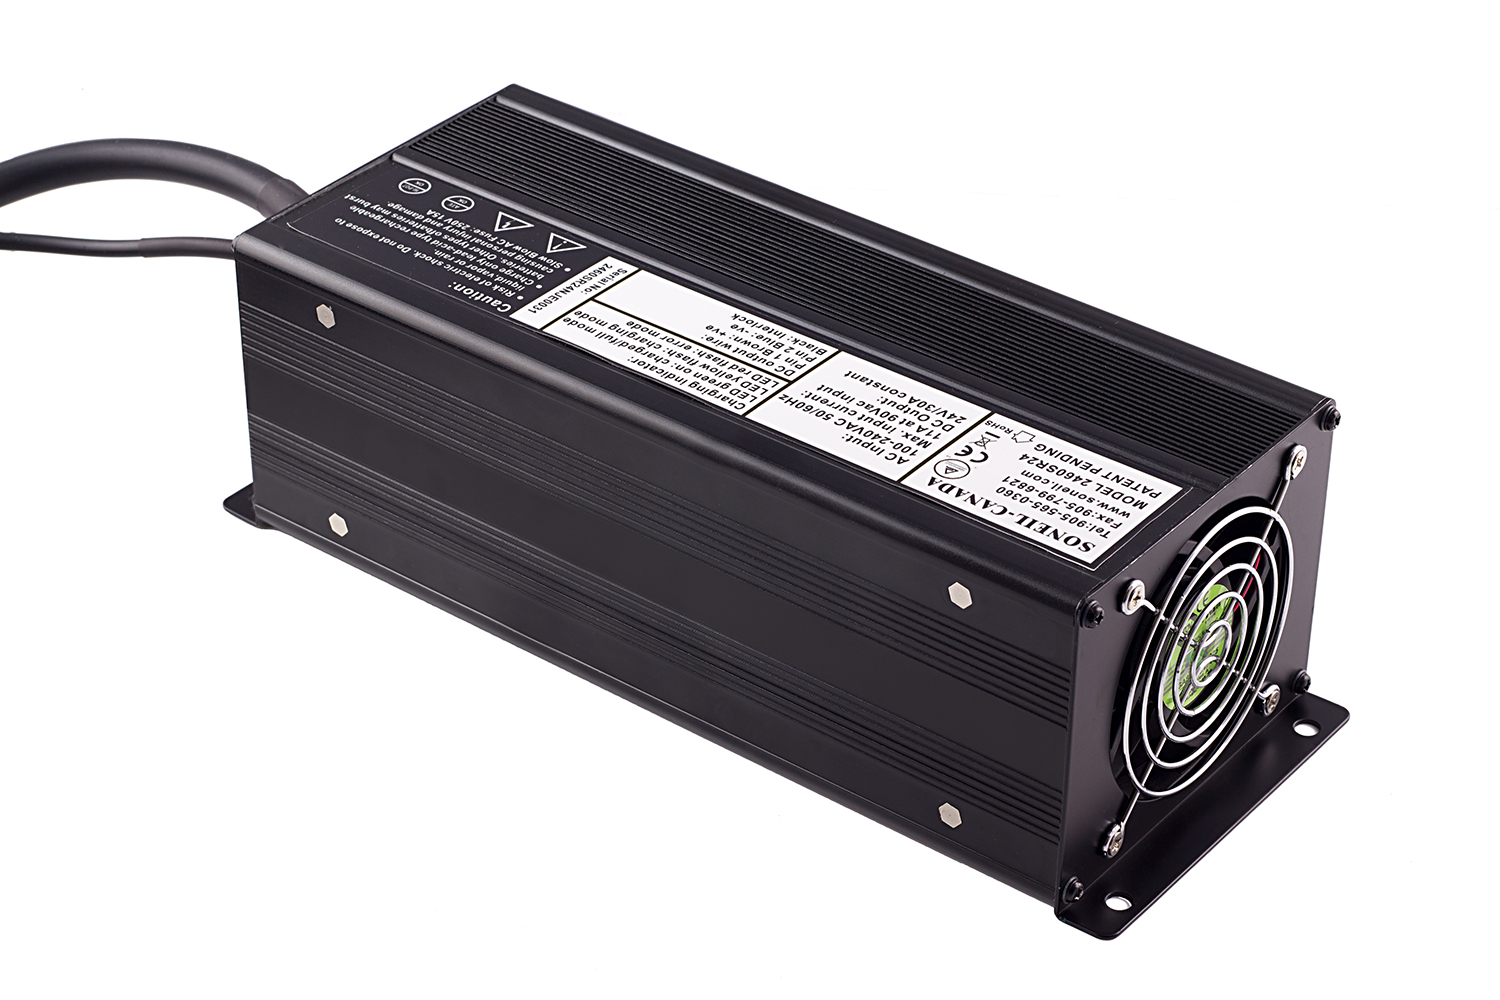 2460SR24 (24V, 30A) Battery Charger